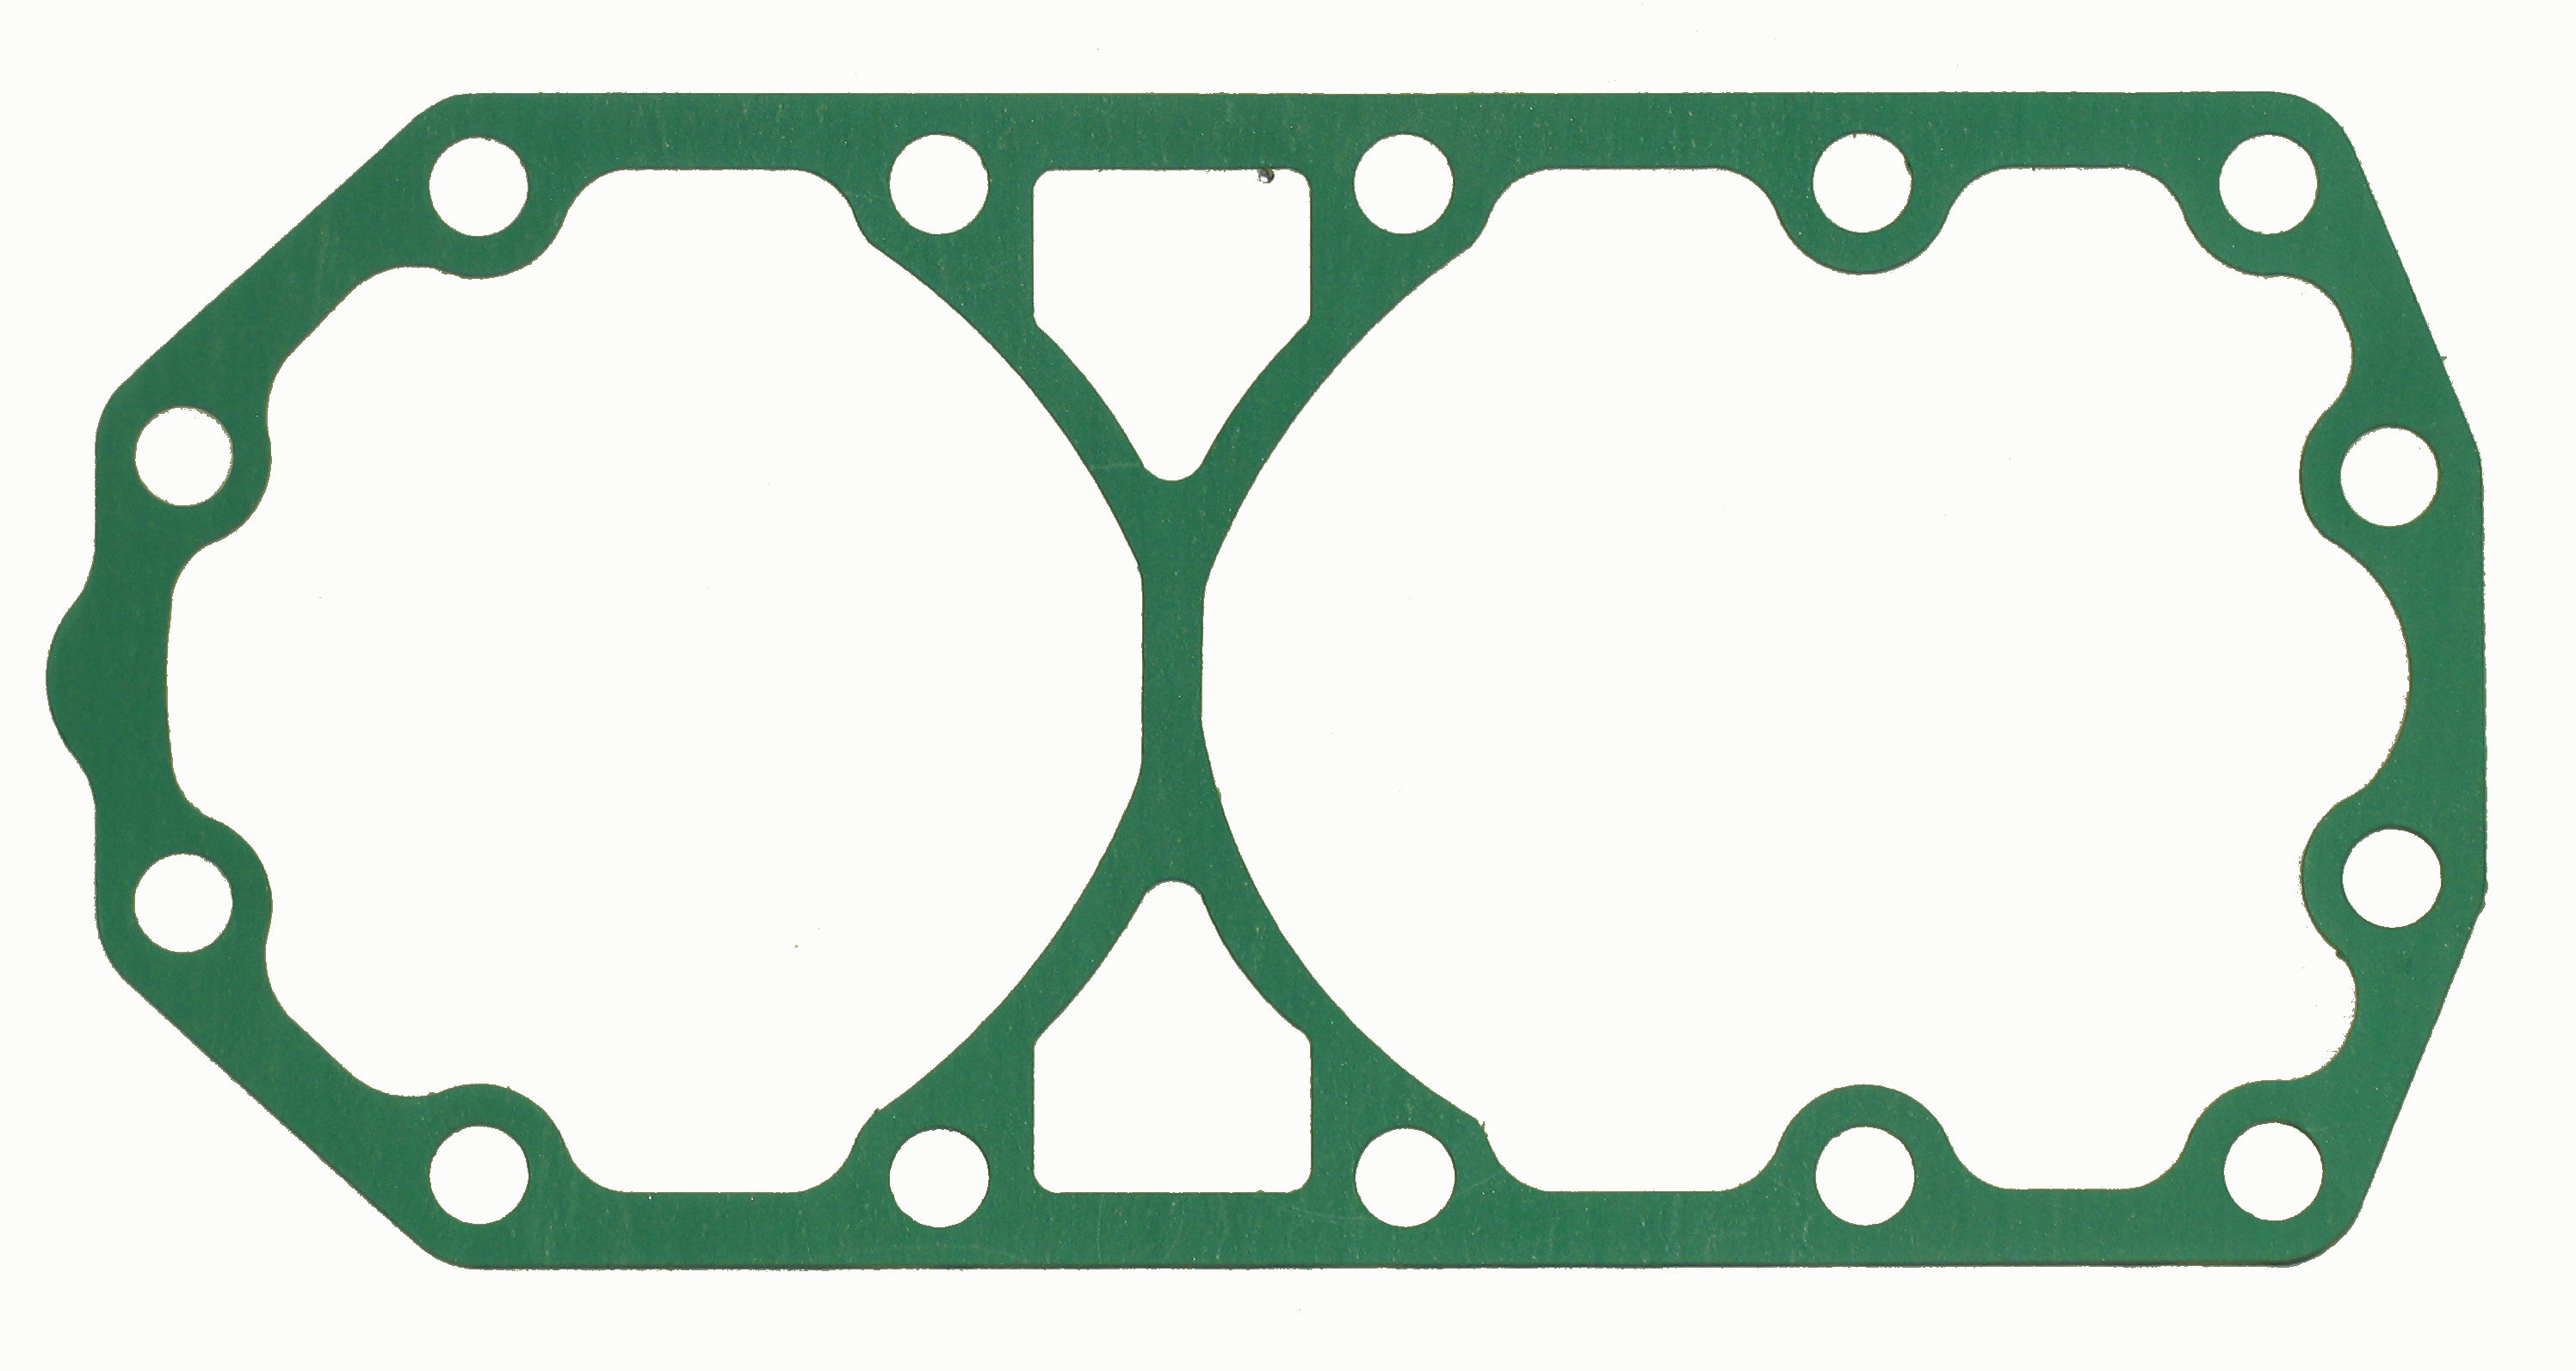 GKT-6360 Gasket; R/N GKT-950 (Made in the USA)